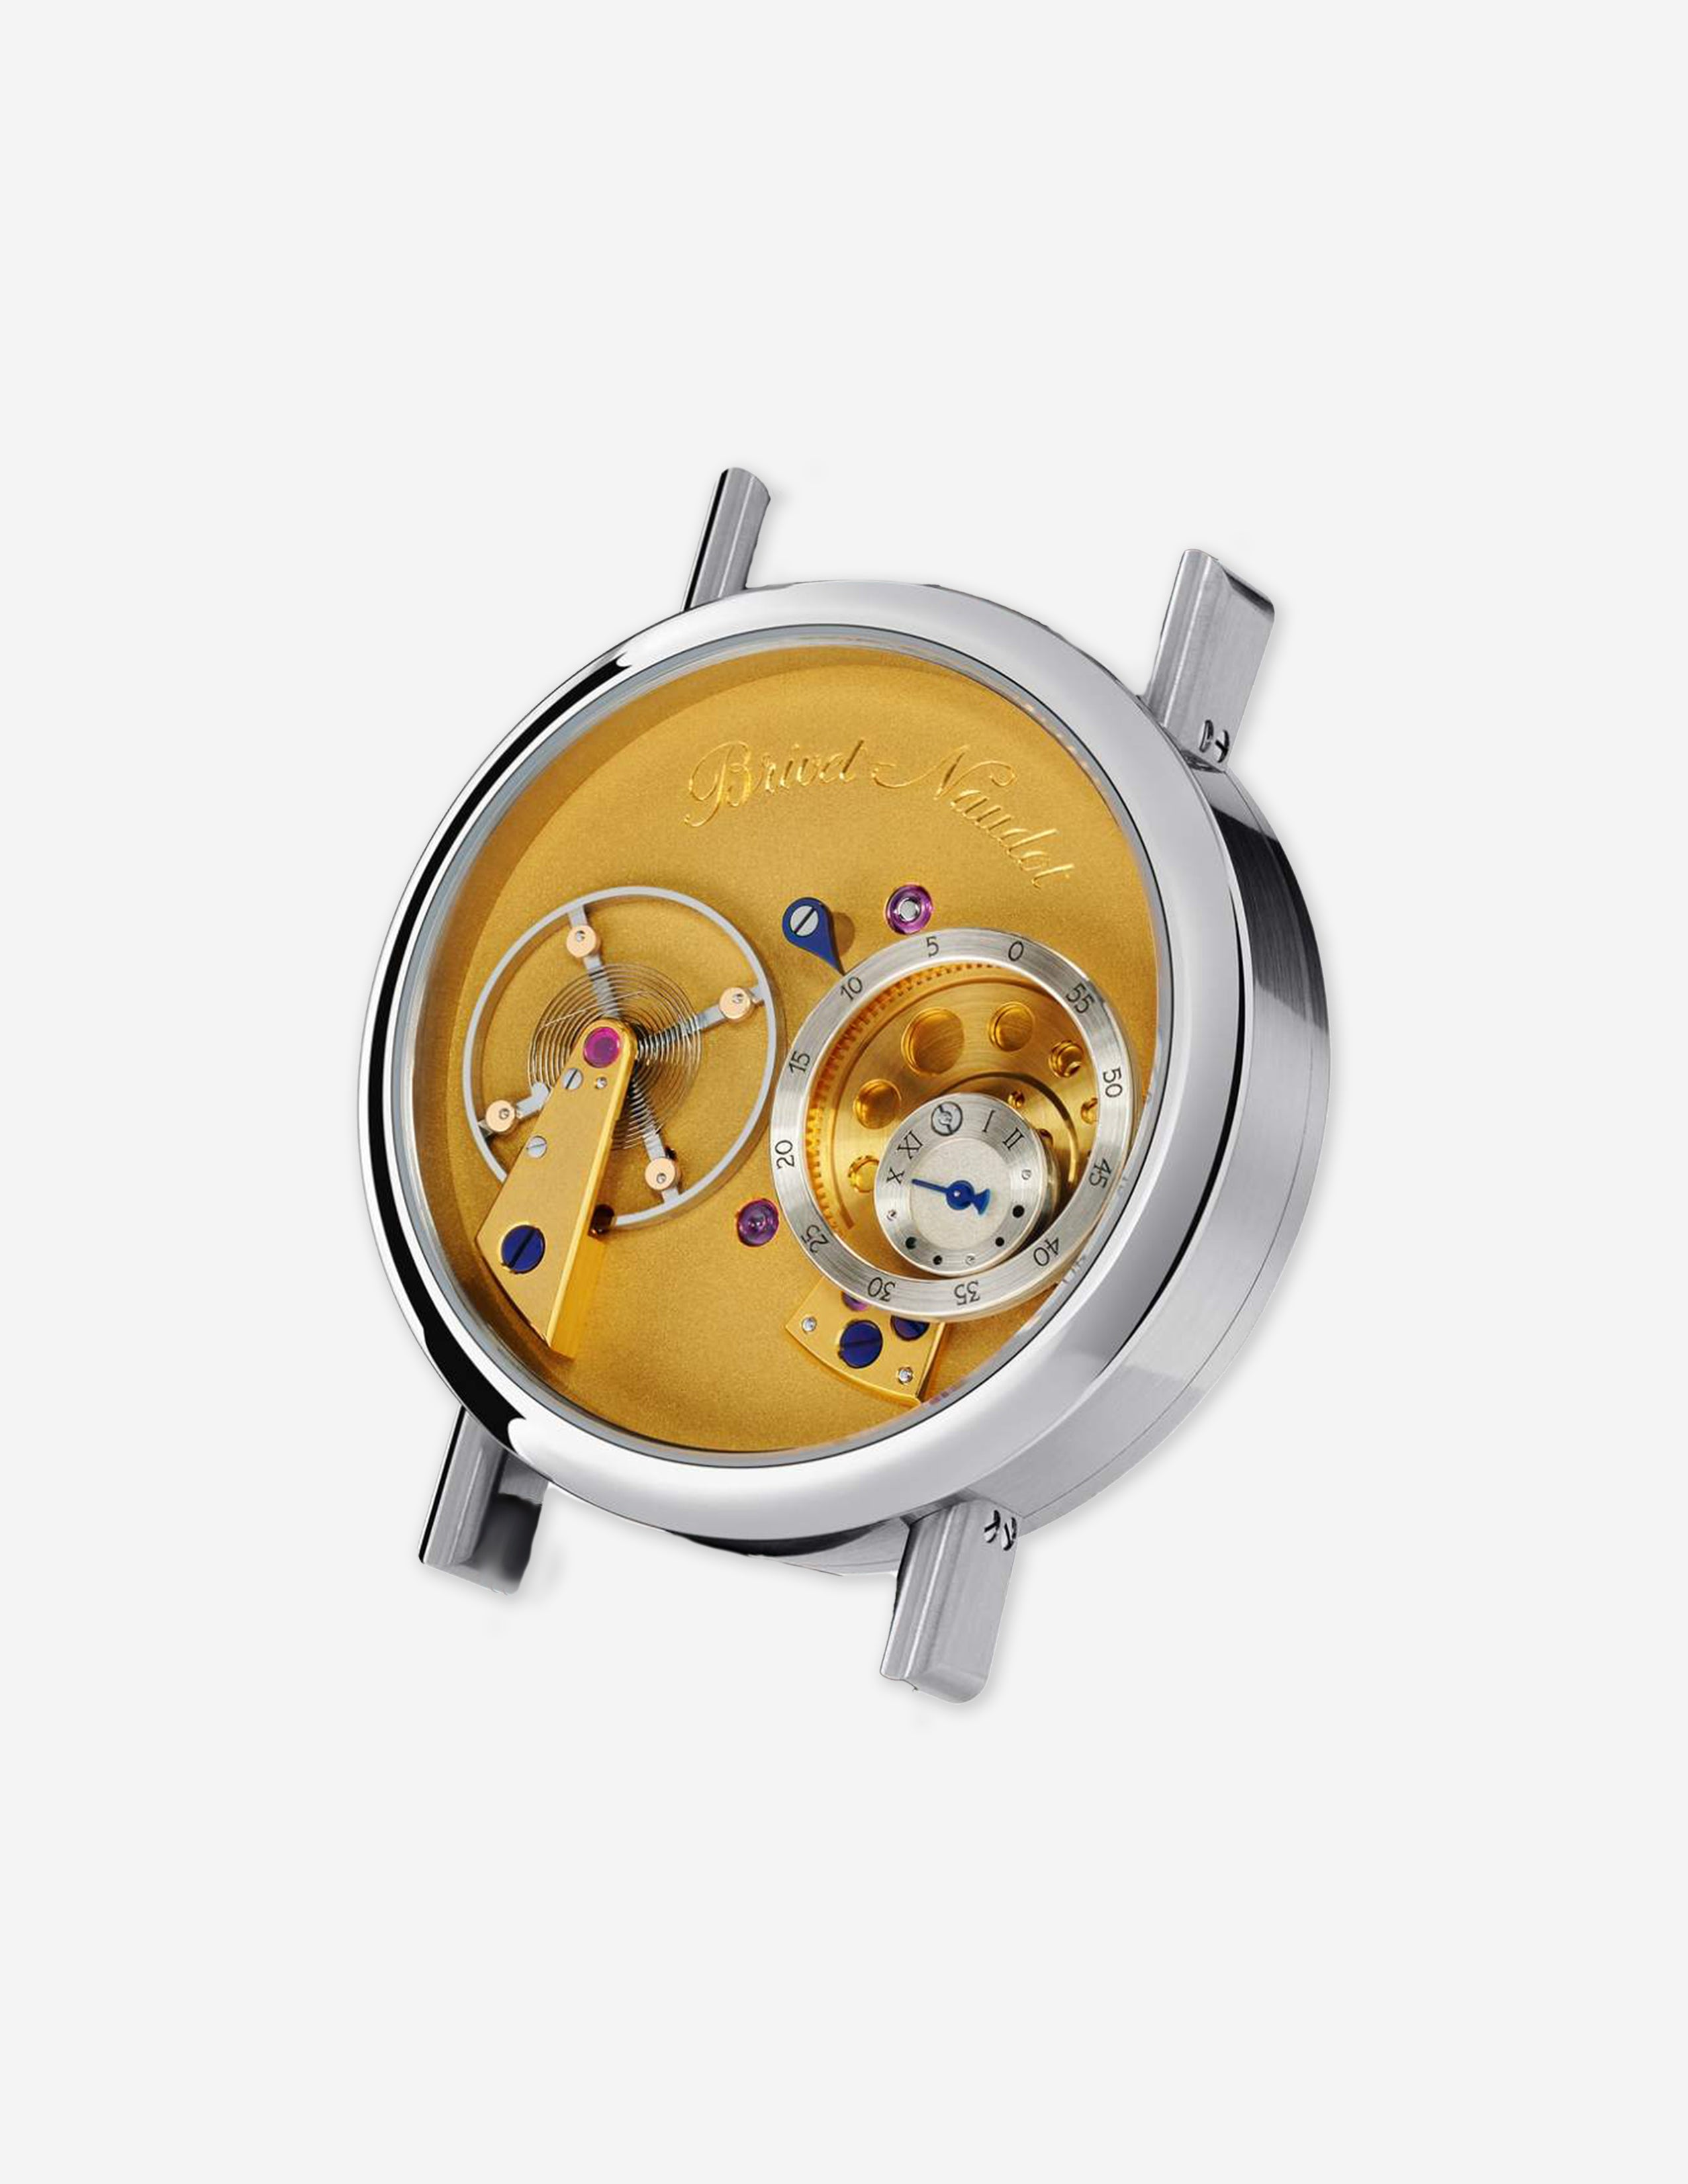 The Cyril Brivet-Naudot Eccentric wristwatch that was nomincated for a GPHG award for A Collected Man London